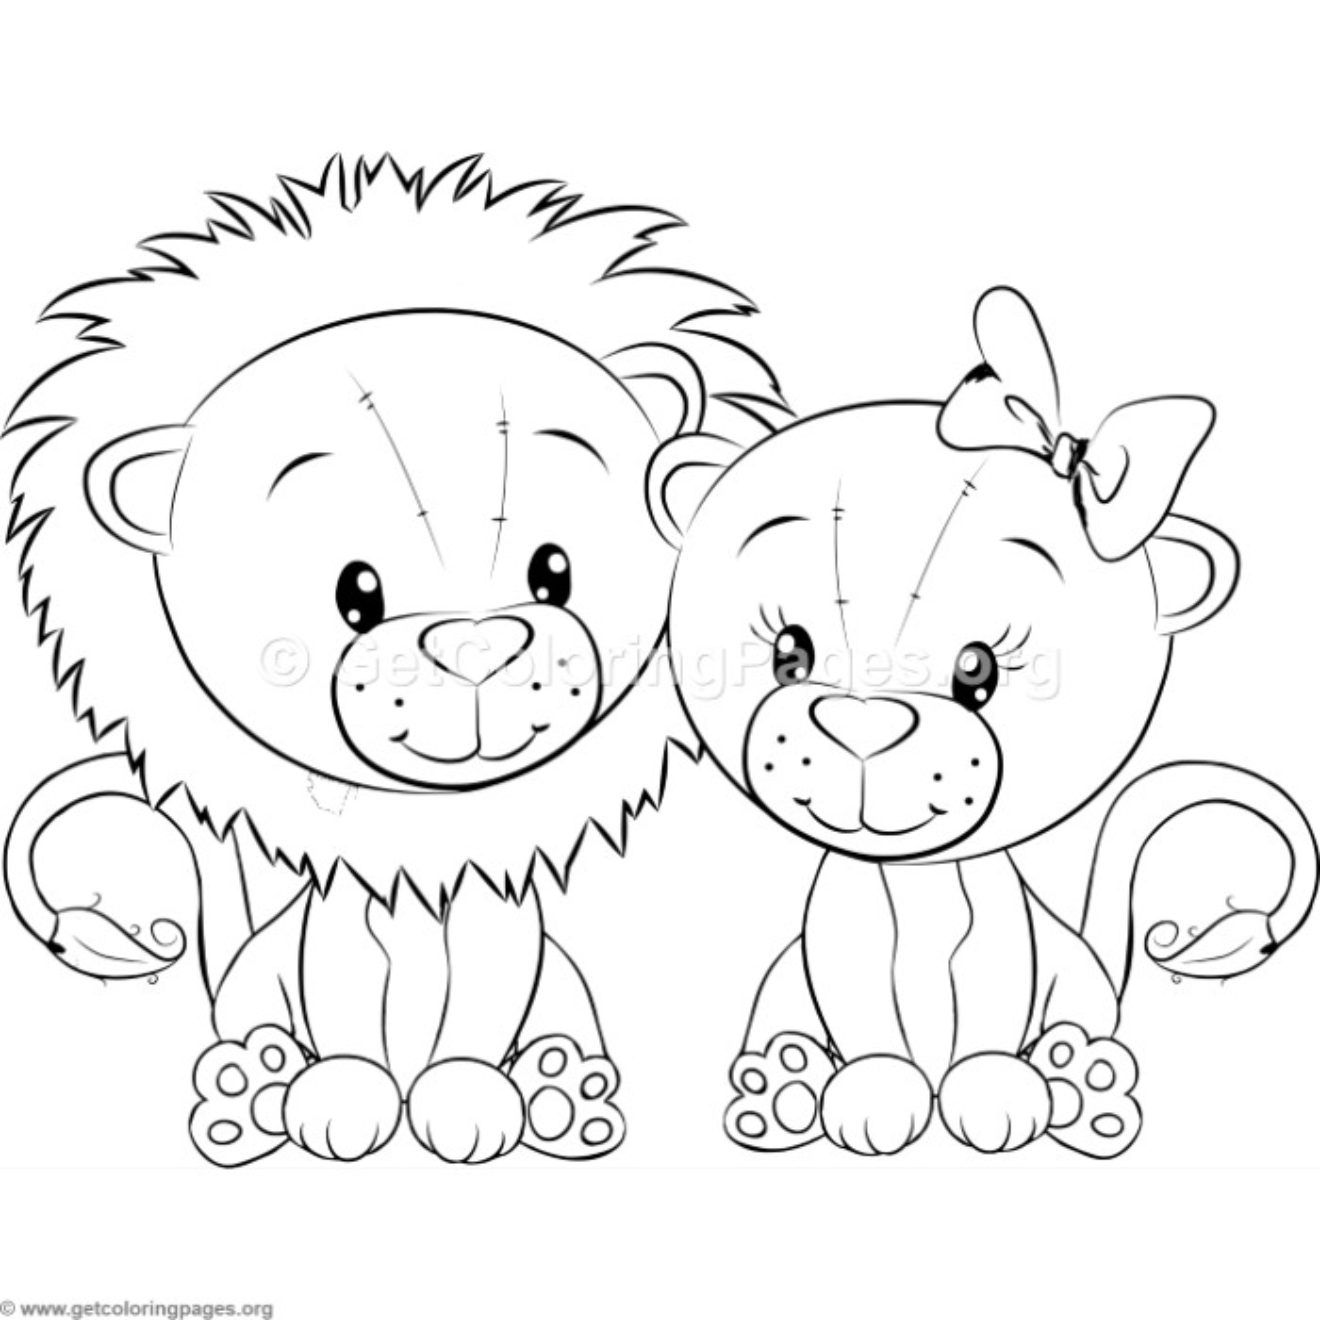 Little Lion 2 Coloring Pages Cute Coloring Pages Unicorn